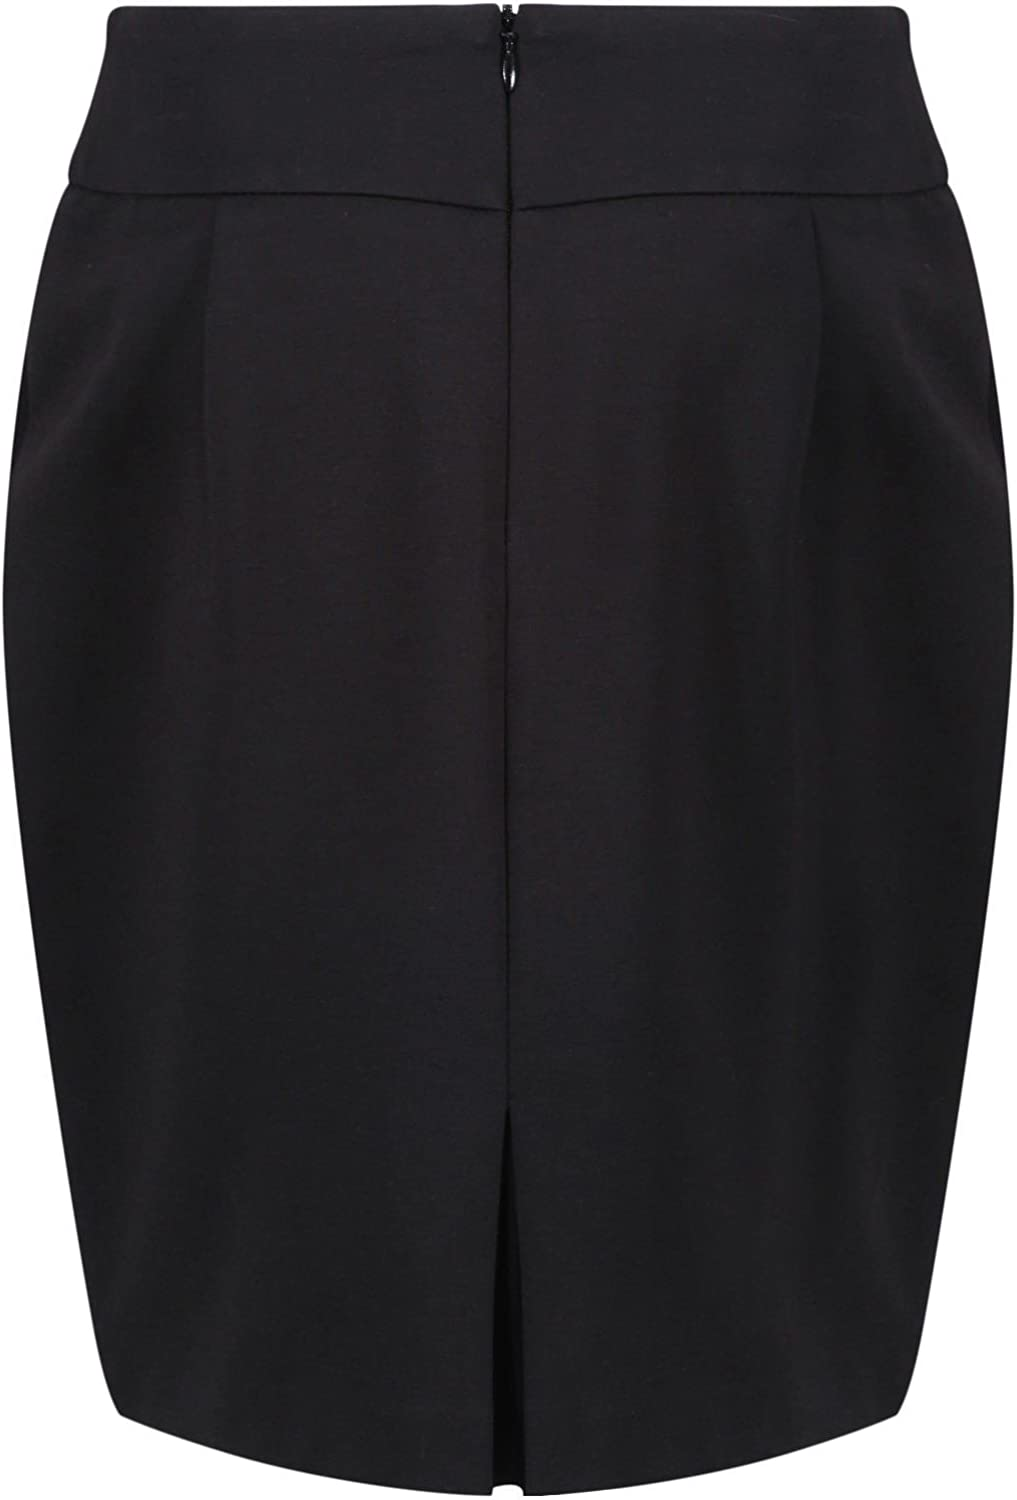 Marks And Spencer School Fashion Skirt Black Age 14-15